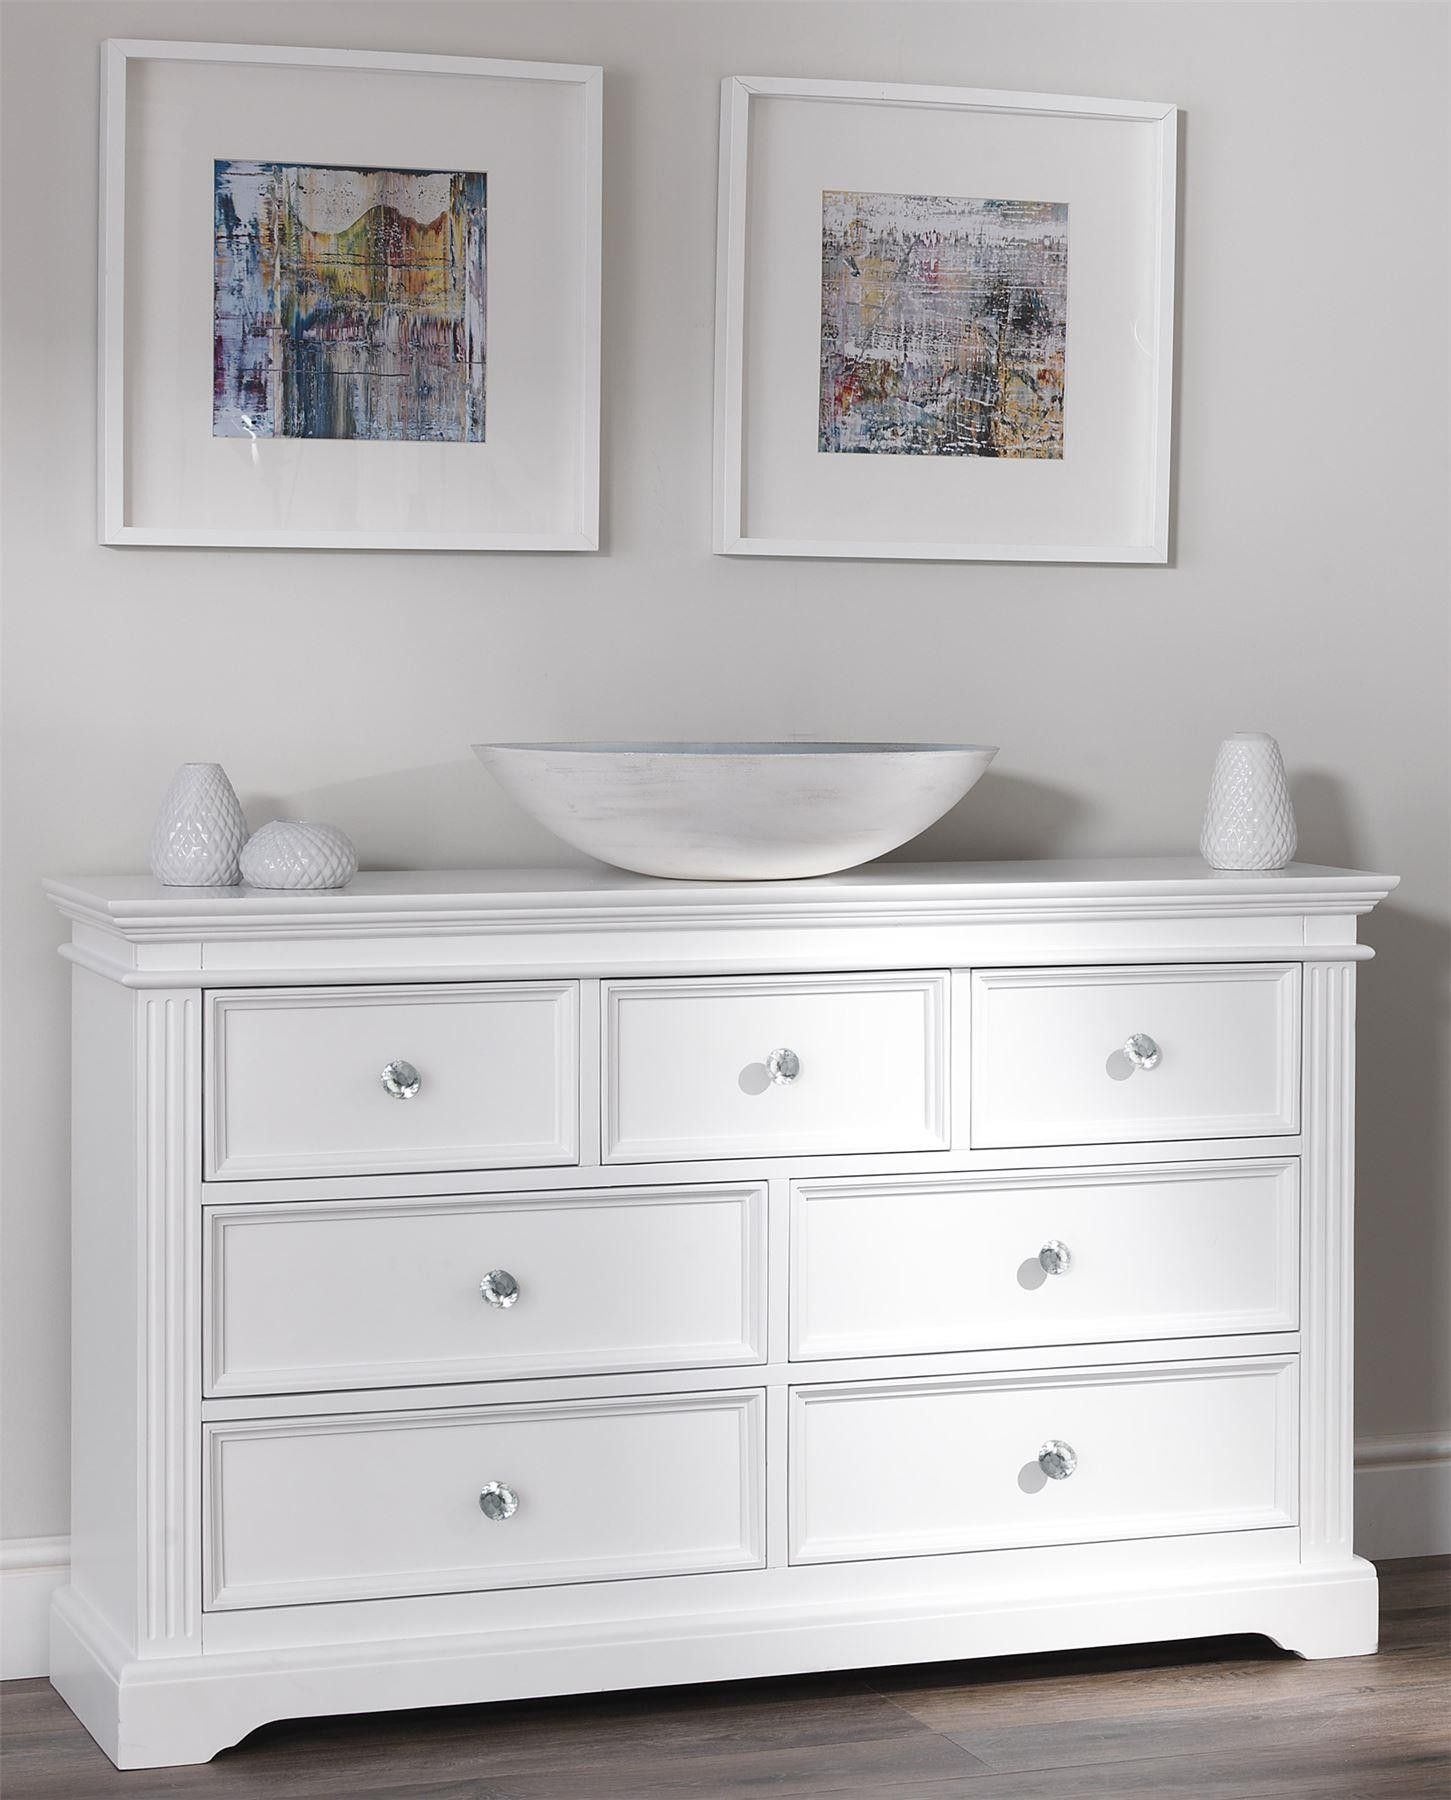 Gainsborough White 7 Draw Chest With Crystal Handles White Chest Of Drawers White Bedroom Vanity Bedroom Chest Of Drawers